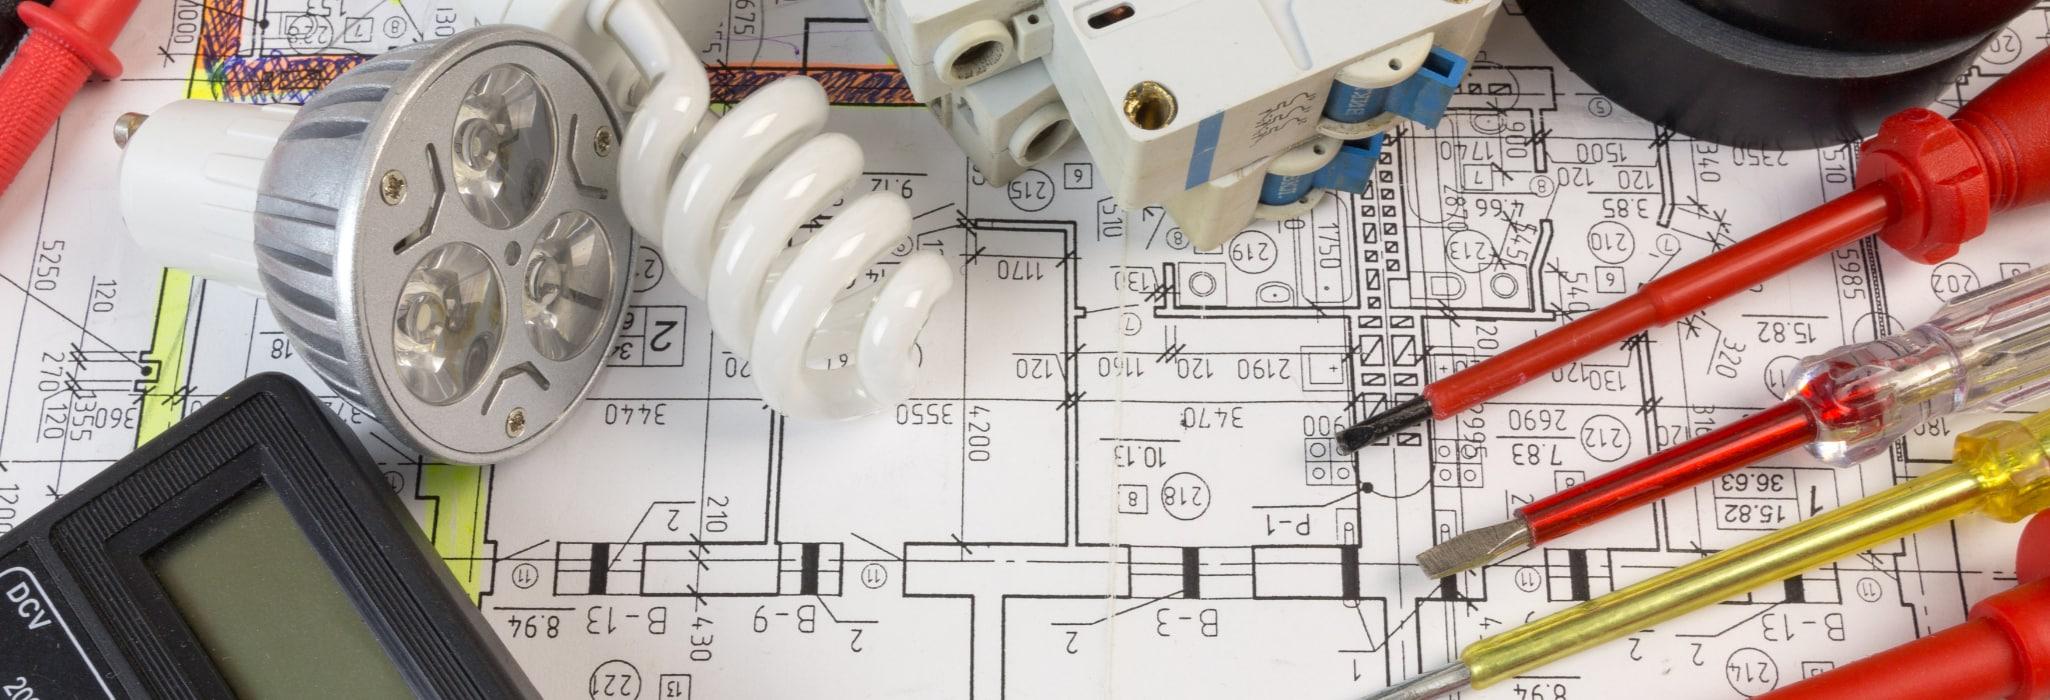 Electrical service.